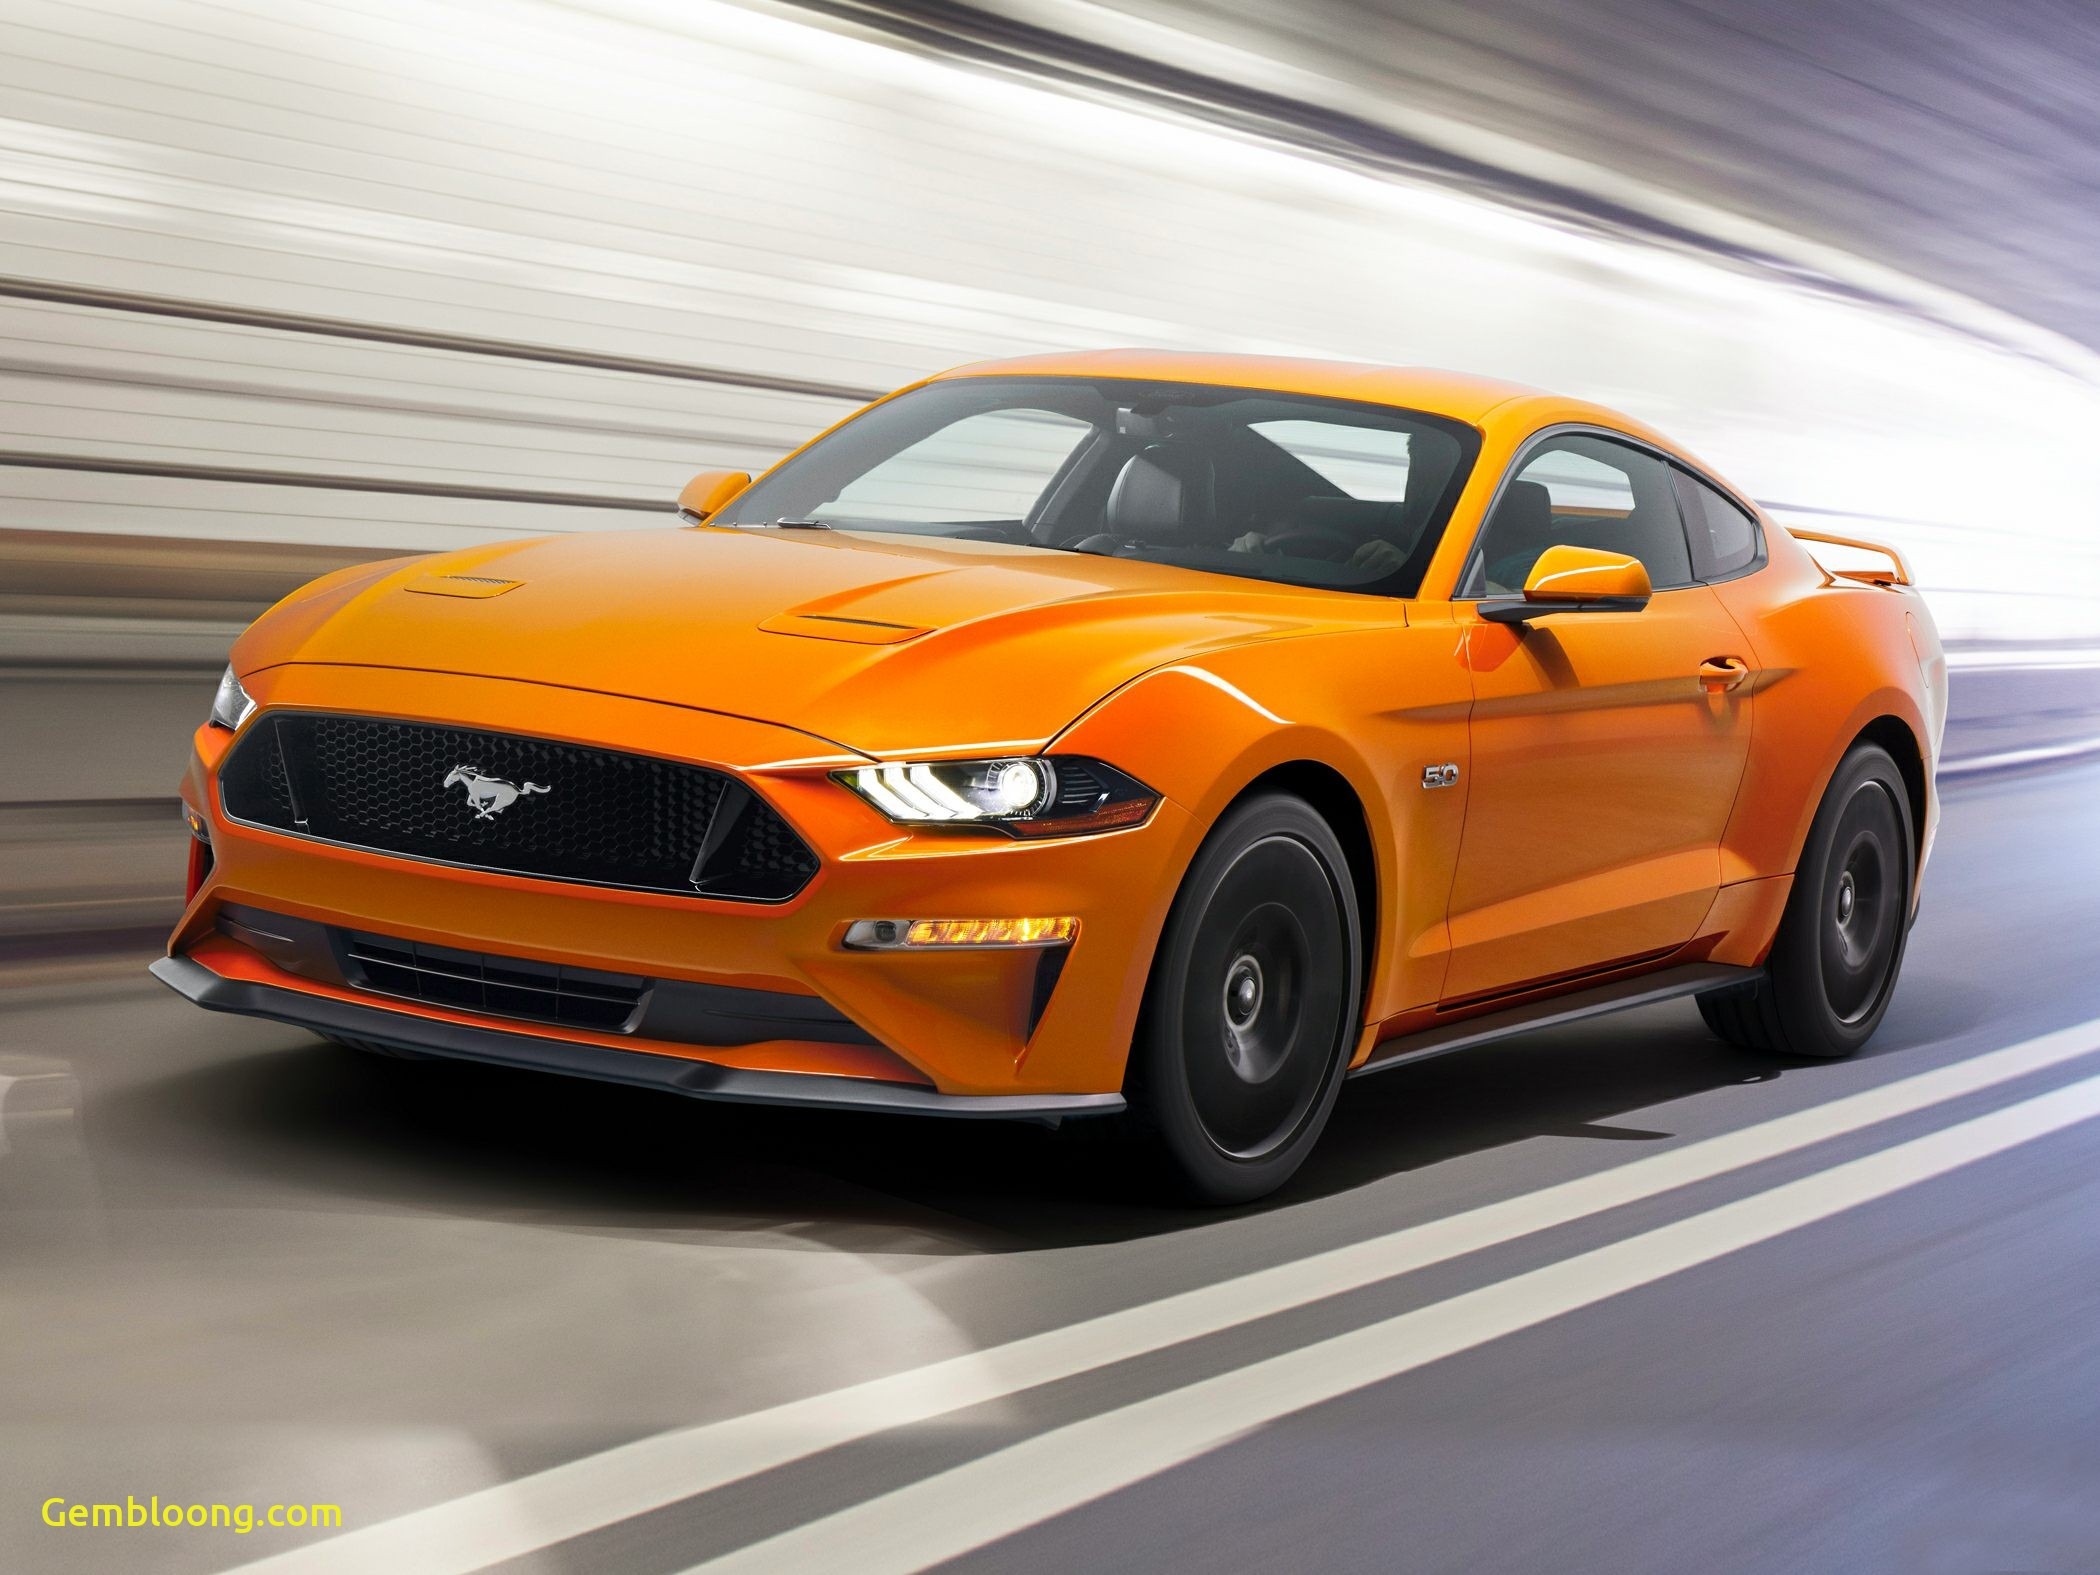 2015 ford Mustang Ecoboost Awesome 2019 ford Mustang Deals Prices Incentives & Leases